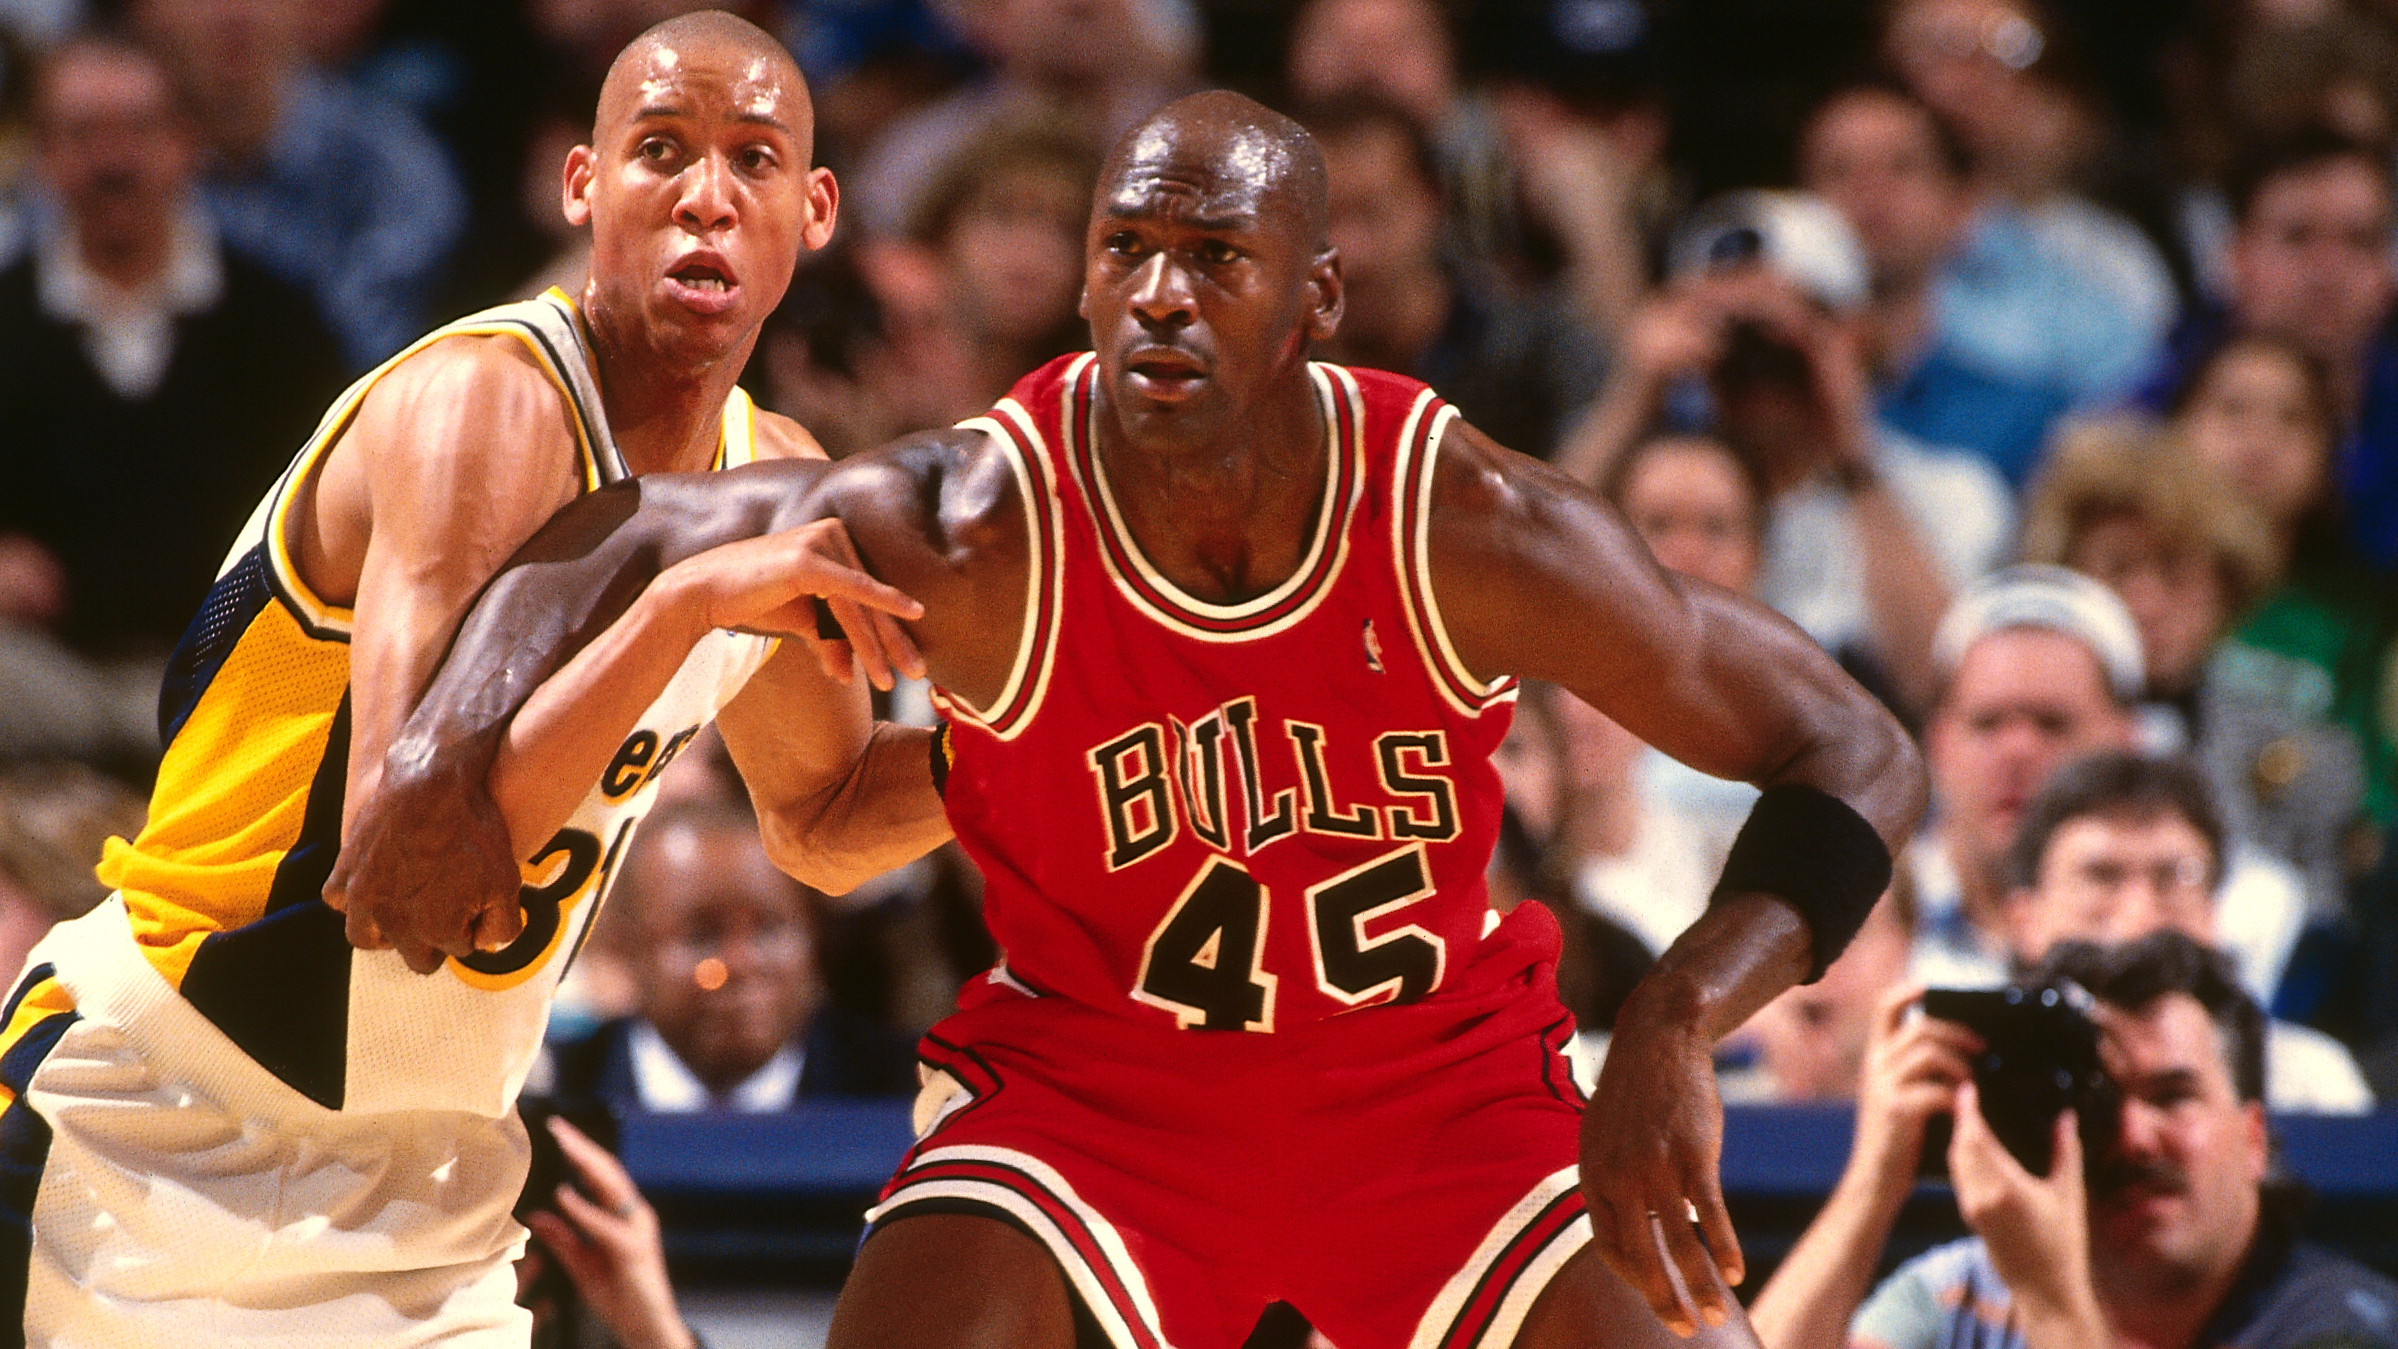 b0b97c98 'I'm back': The day Michael Jordan announced his return to the NBA